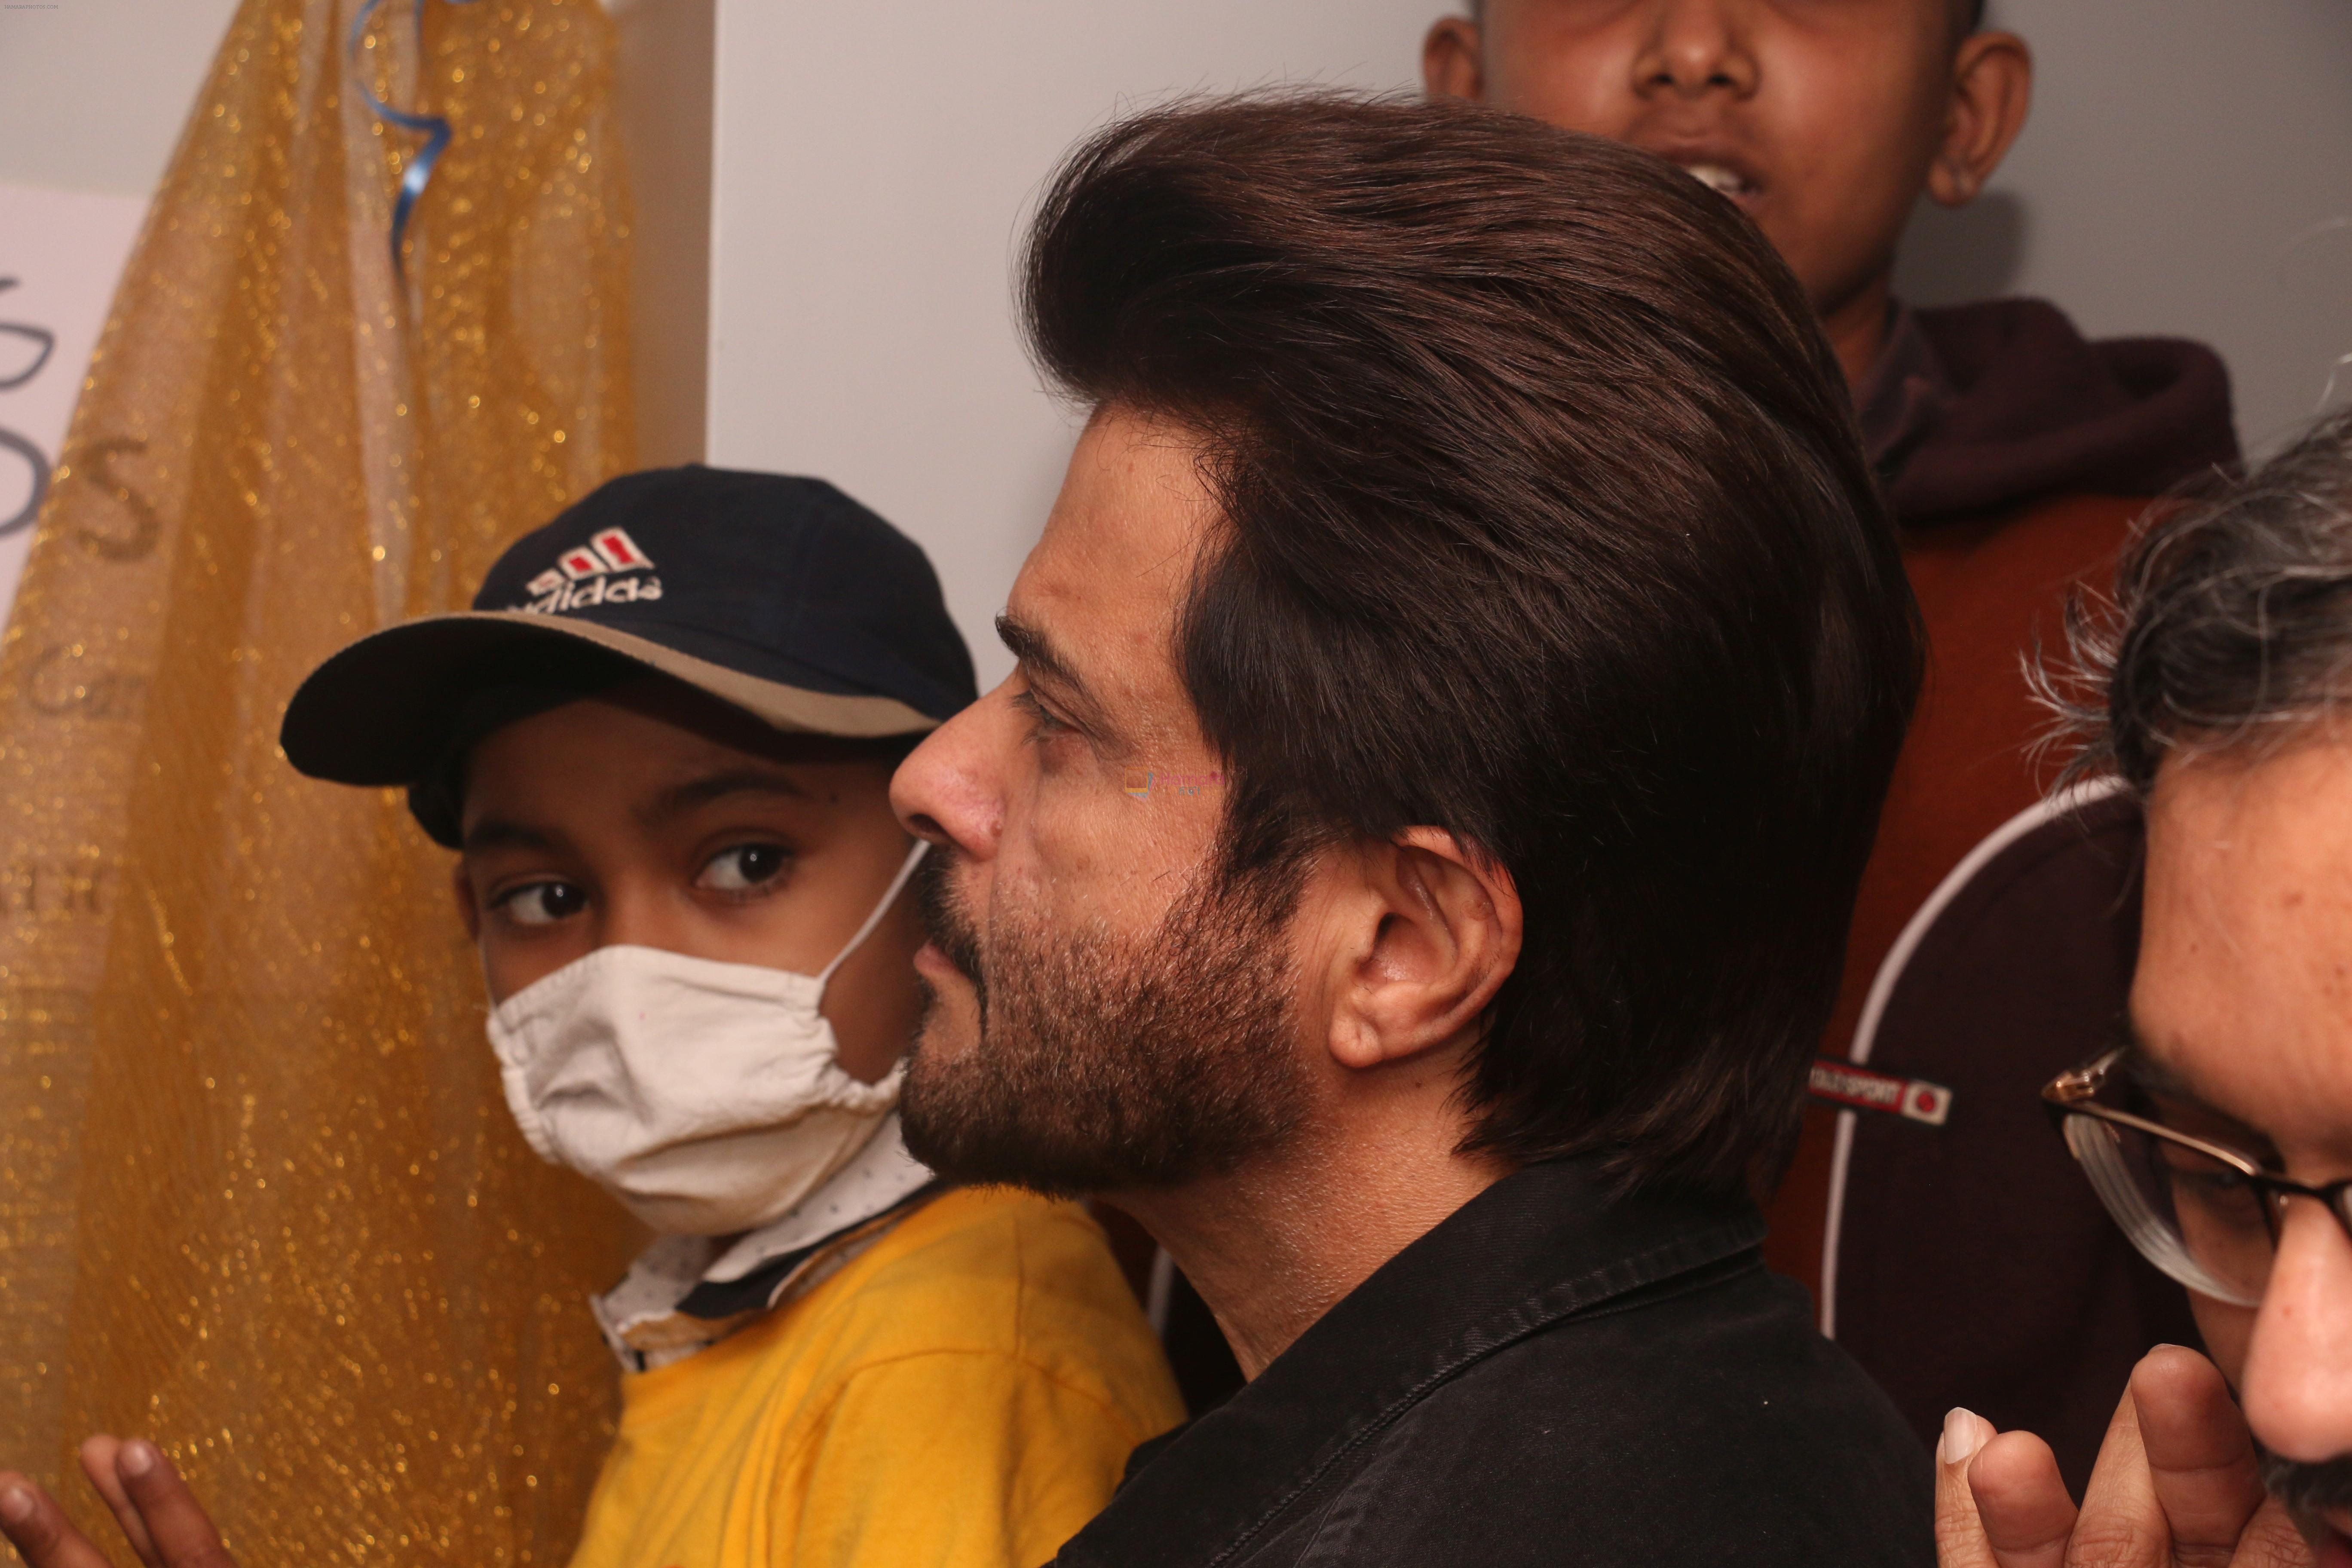 Anil Kapoor Inaugurates the pediatric opd by helping hands at the Tata Memorial hospital in parel on 9th Feb 2019